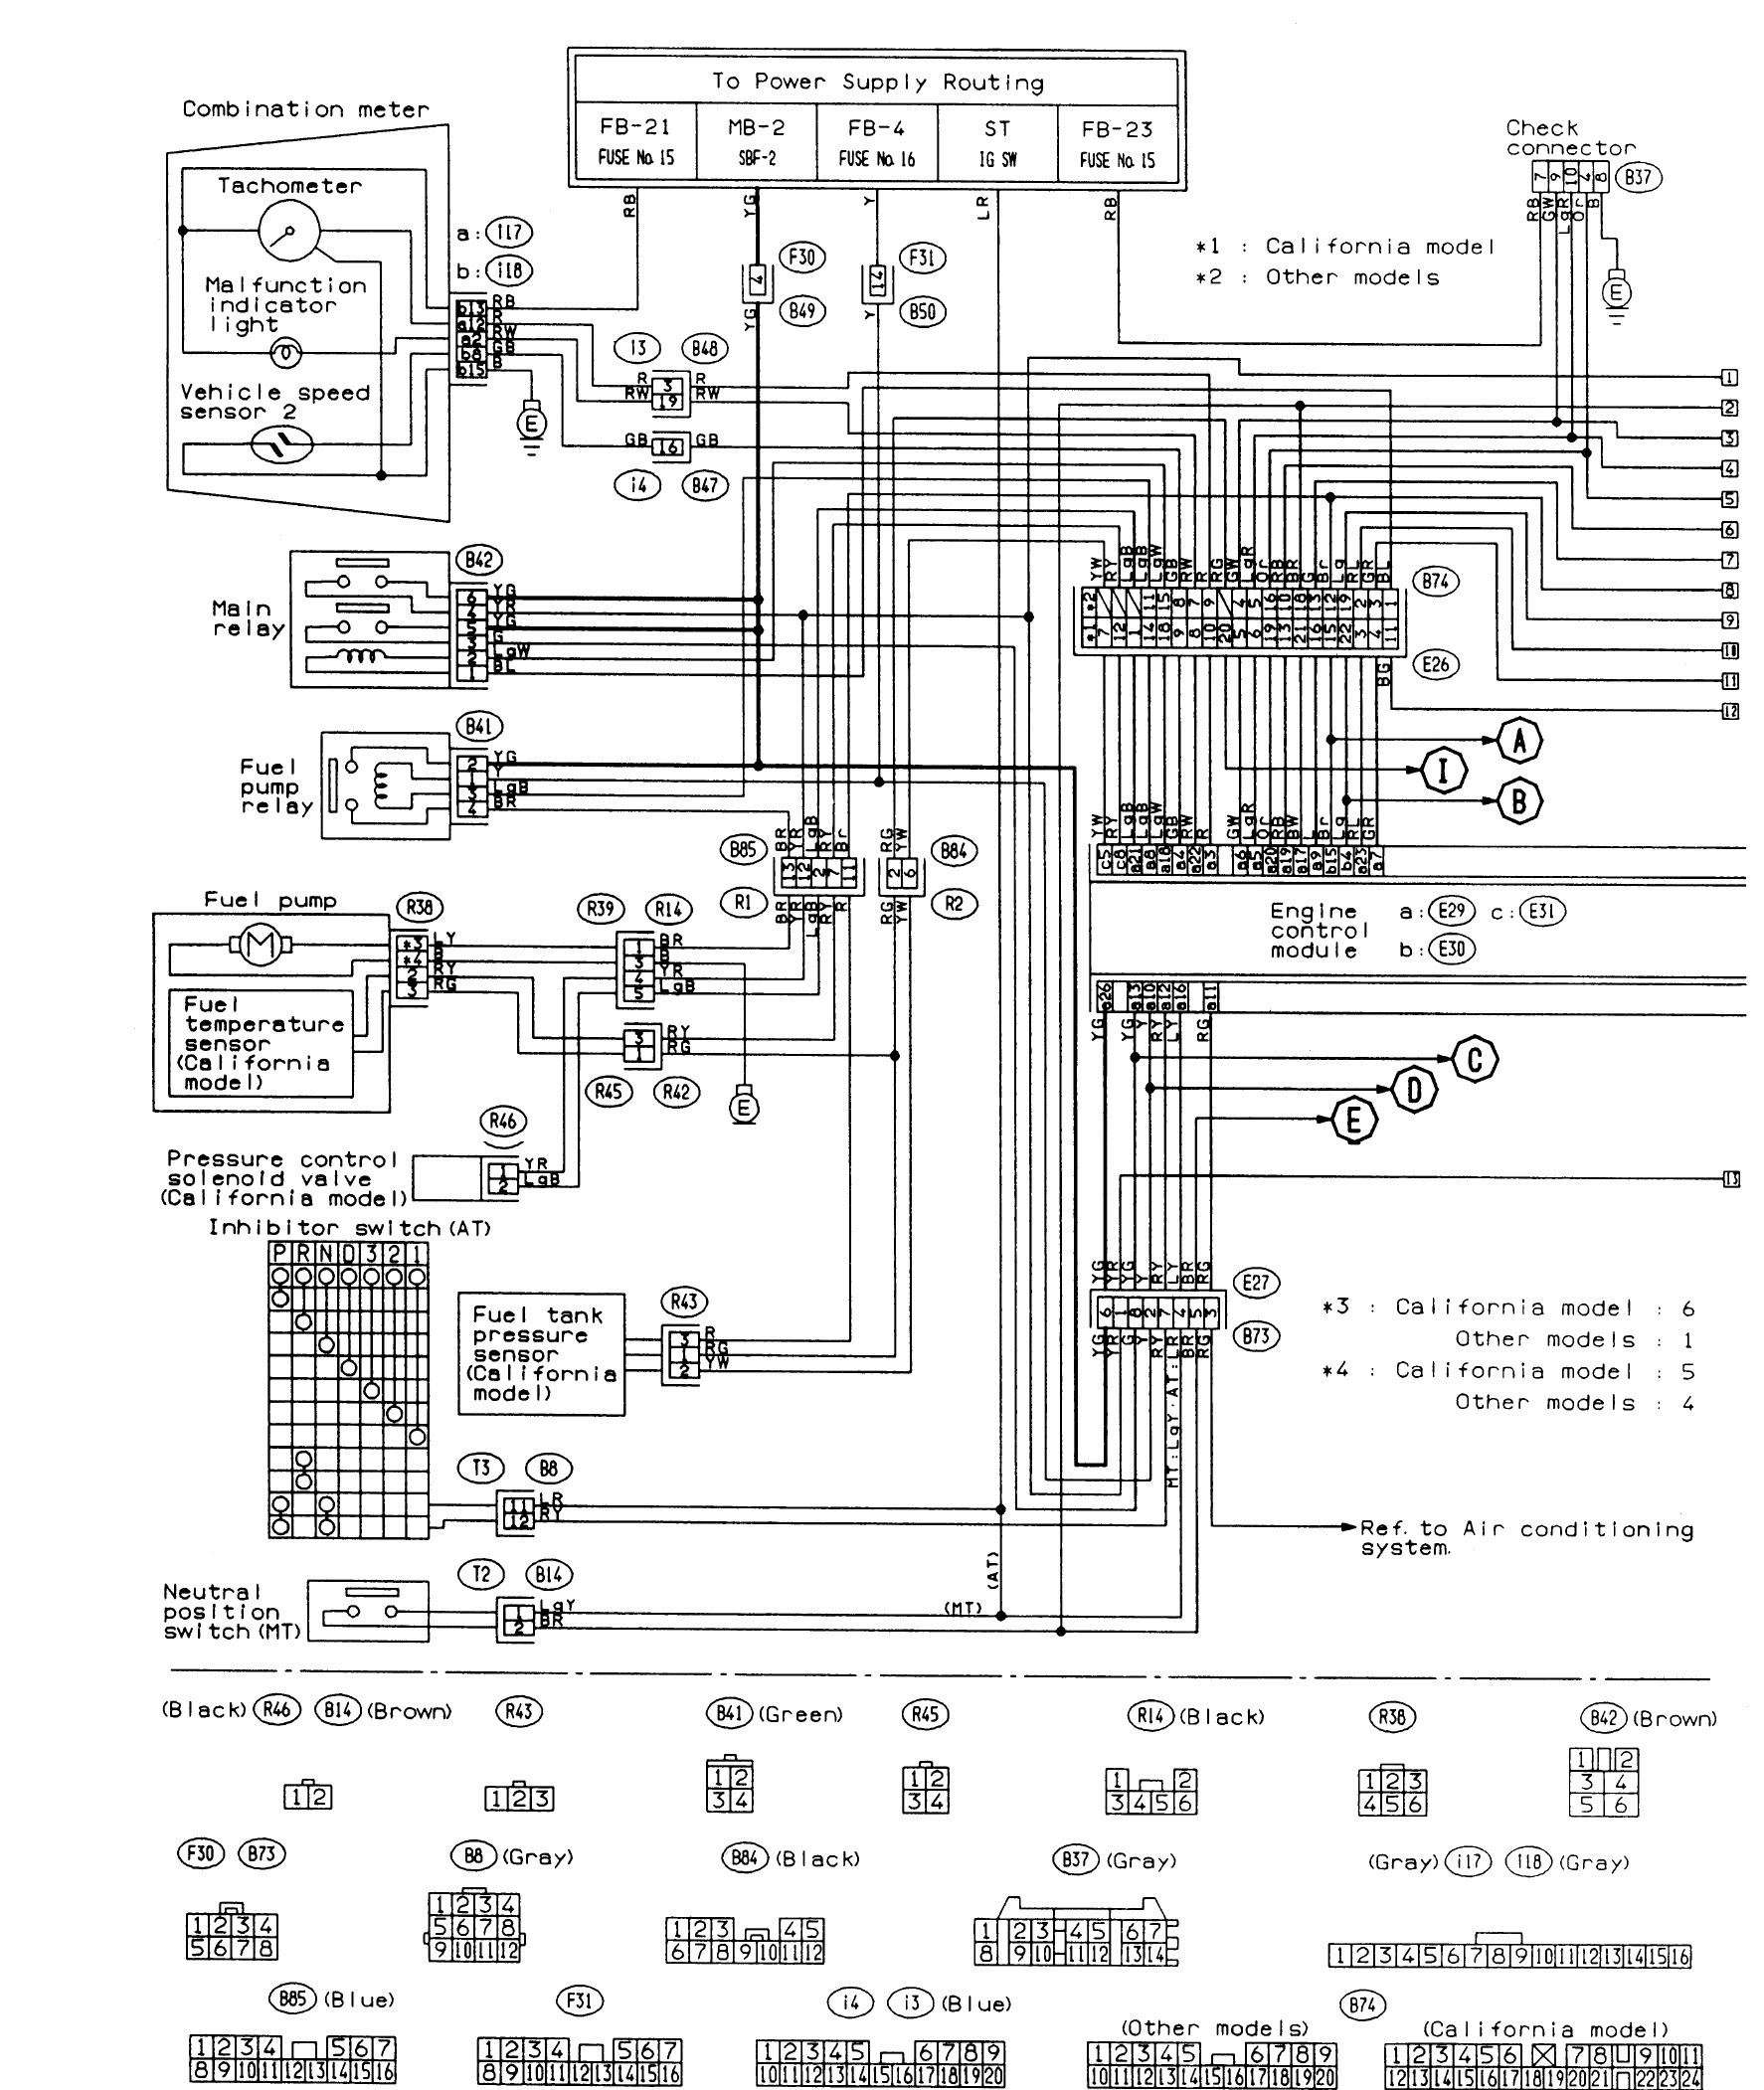 subaru 2 5 engine timingbeltdiagram wiring diagram portal u2022 rh graphiko co Subaru 2 5 Stage 2 Turbo Engine Subaru Turbo Diesel